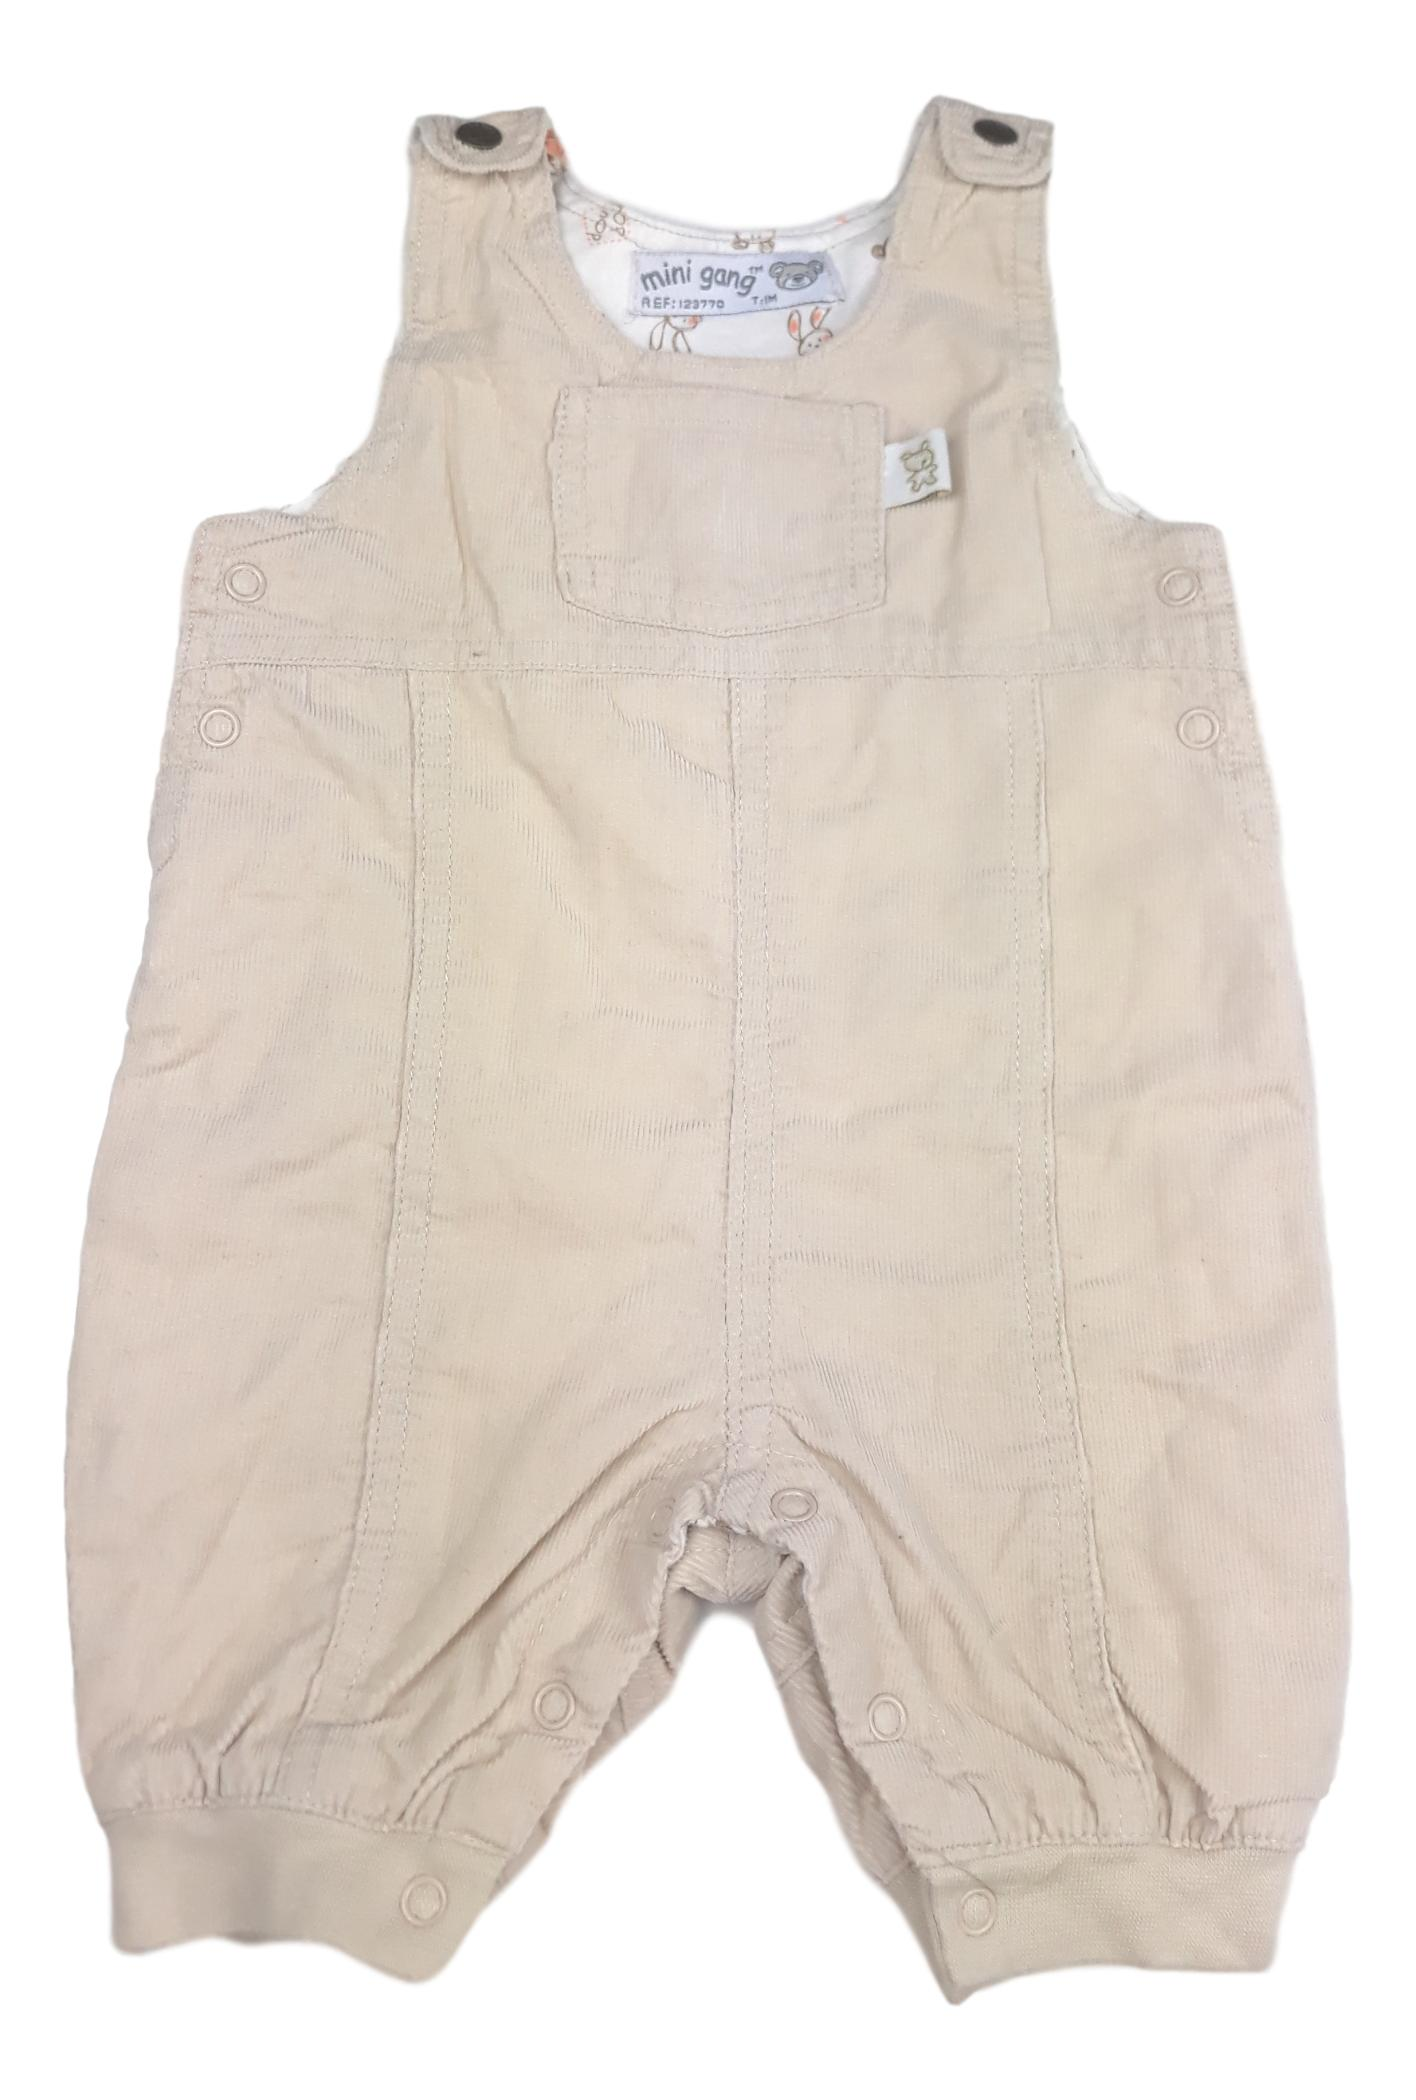 Mini gang - Taille 1 mois